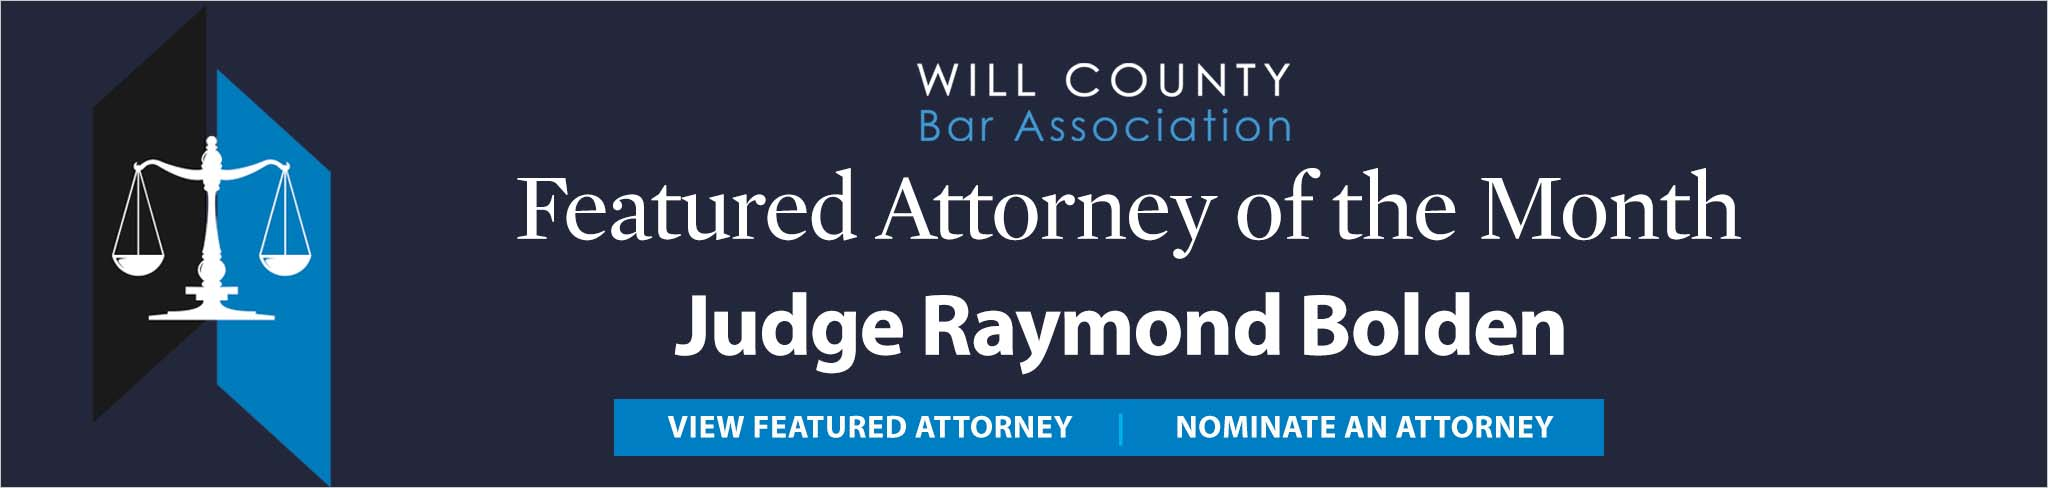 Featured Attorney of the Month Judge Raymond Bolden